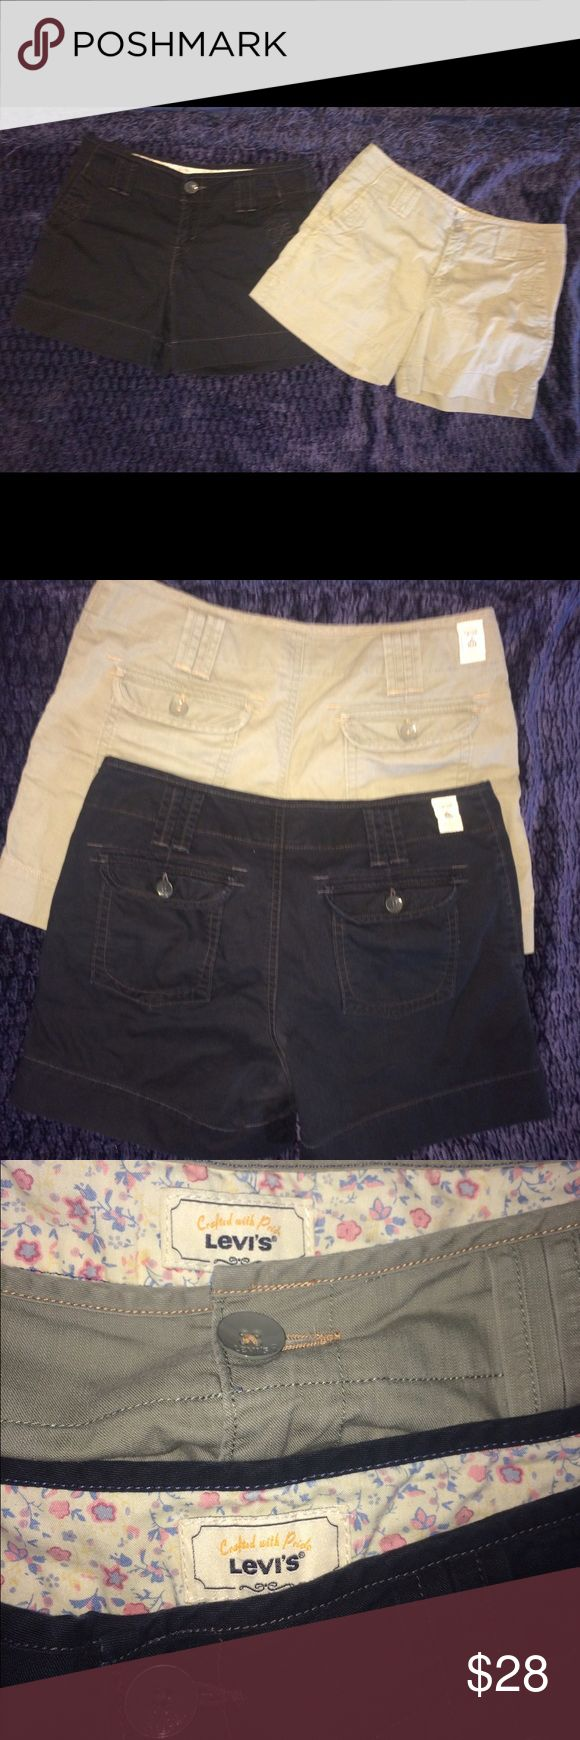 "Two 2 pair Levi's shorts black khaki green size 4 Two 2 pair Levi's shorts black khaki green size 4. These are identical- one black and one khaki green- they are both in fabulous shape These measure as follows waist-32"" inseam-5"" total length from side seam-13 1/2"". These shorts have the little LS &Co emblem on the cuffs- Levi's Shorts"